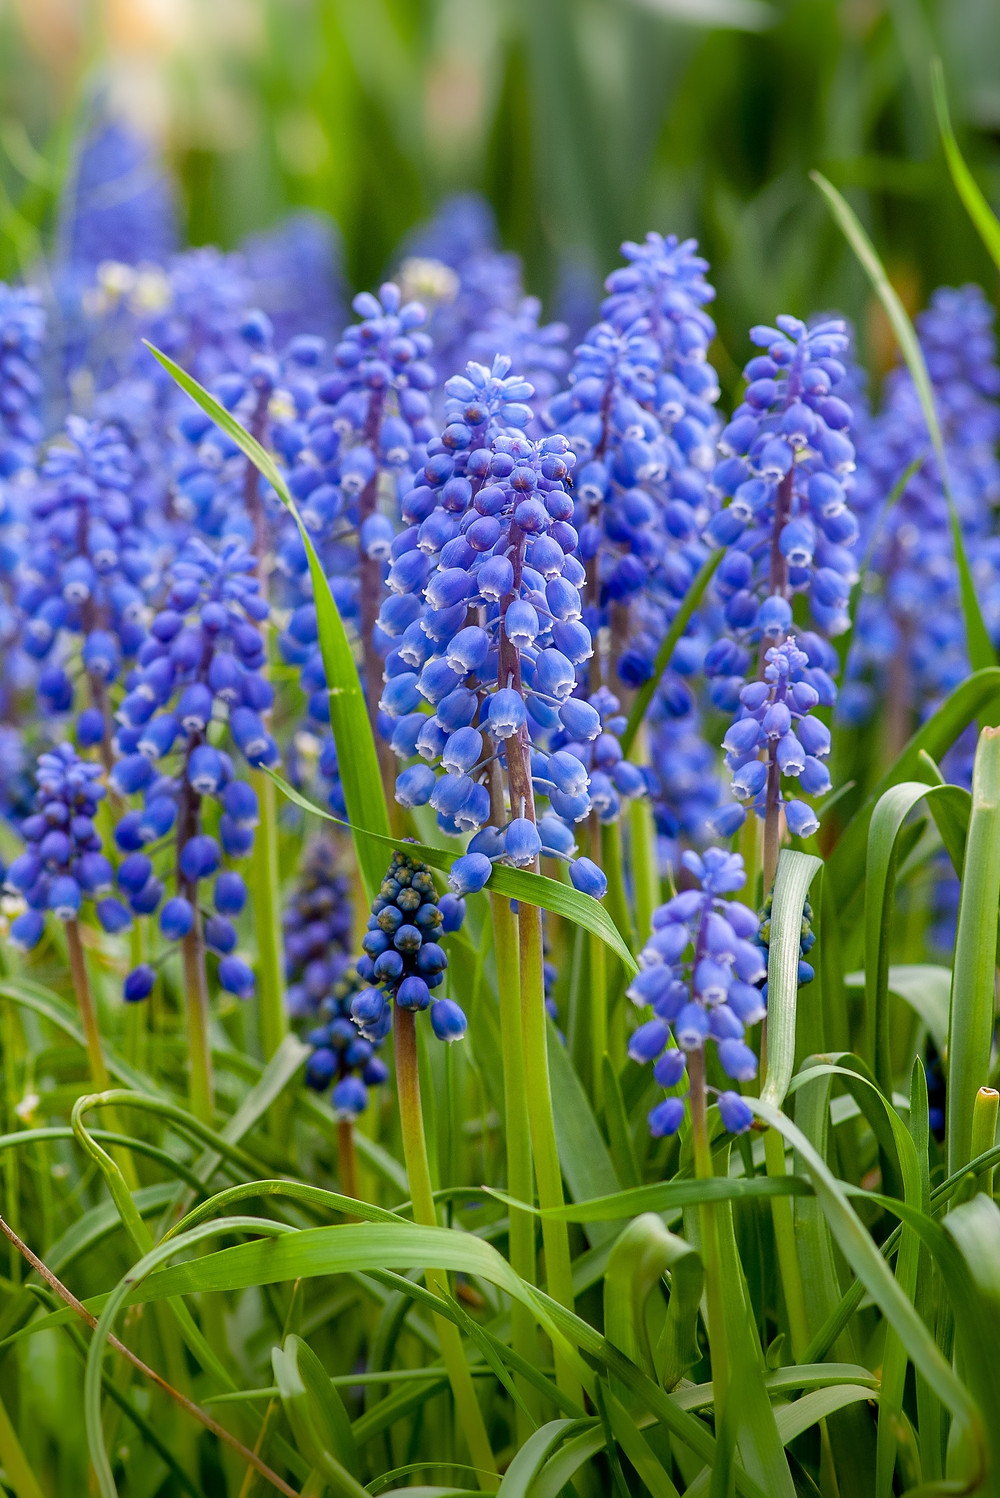 Mescari or grape hyacinth